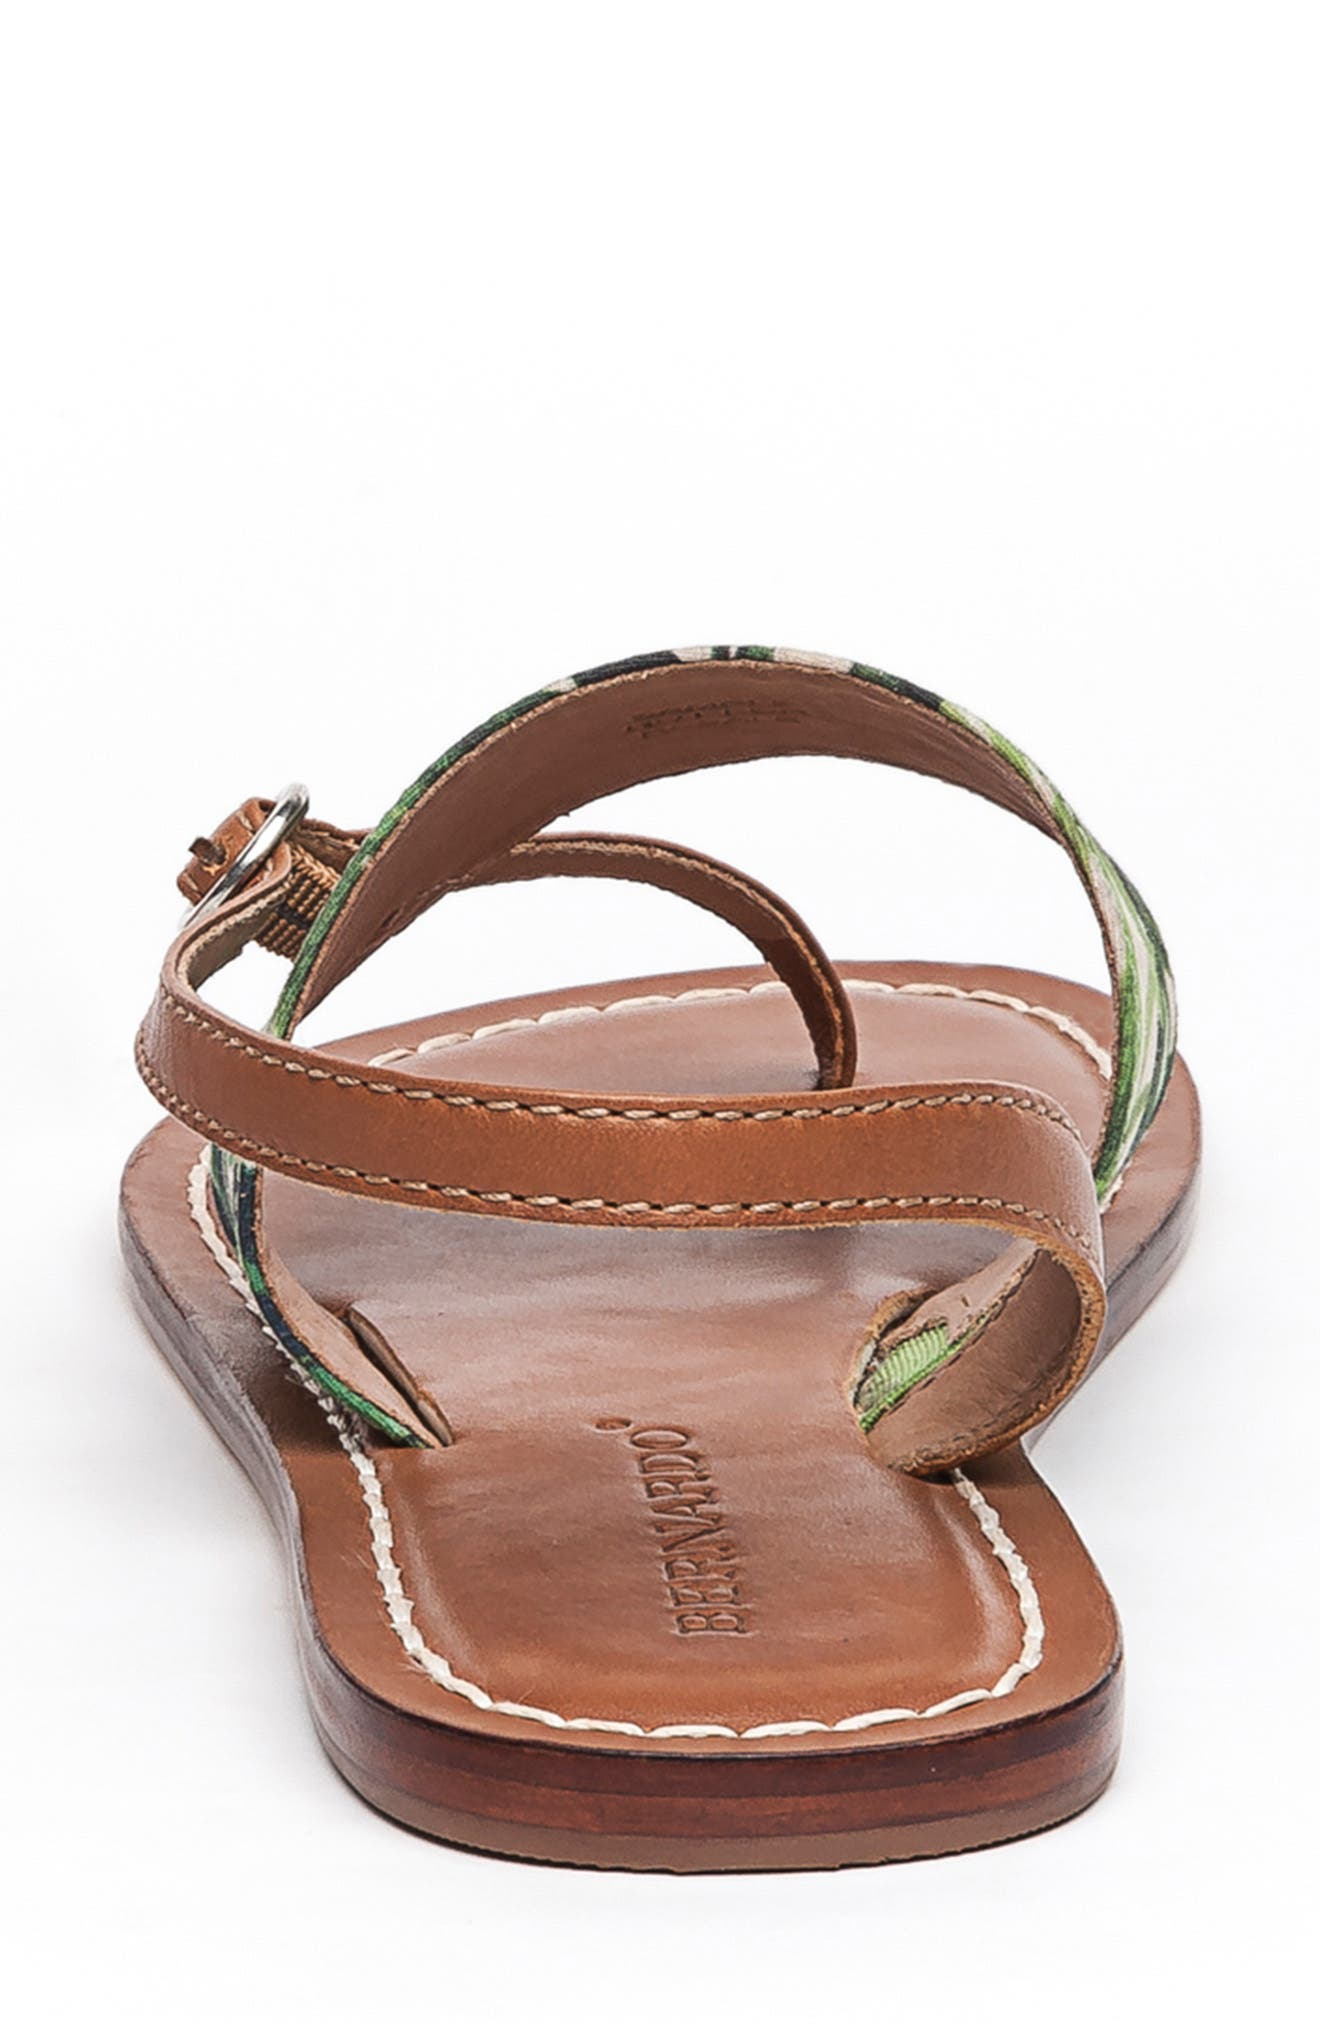 BERNARDO, Footwear Meg Thong Sandal, Alternate thumbnail 7, color, PALM FABRIC/ LUGGAGE LEATHER